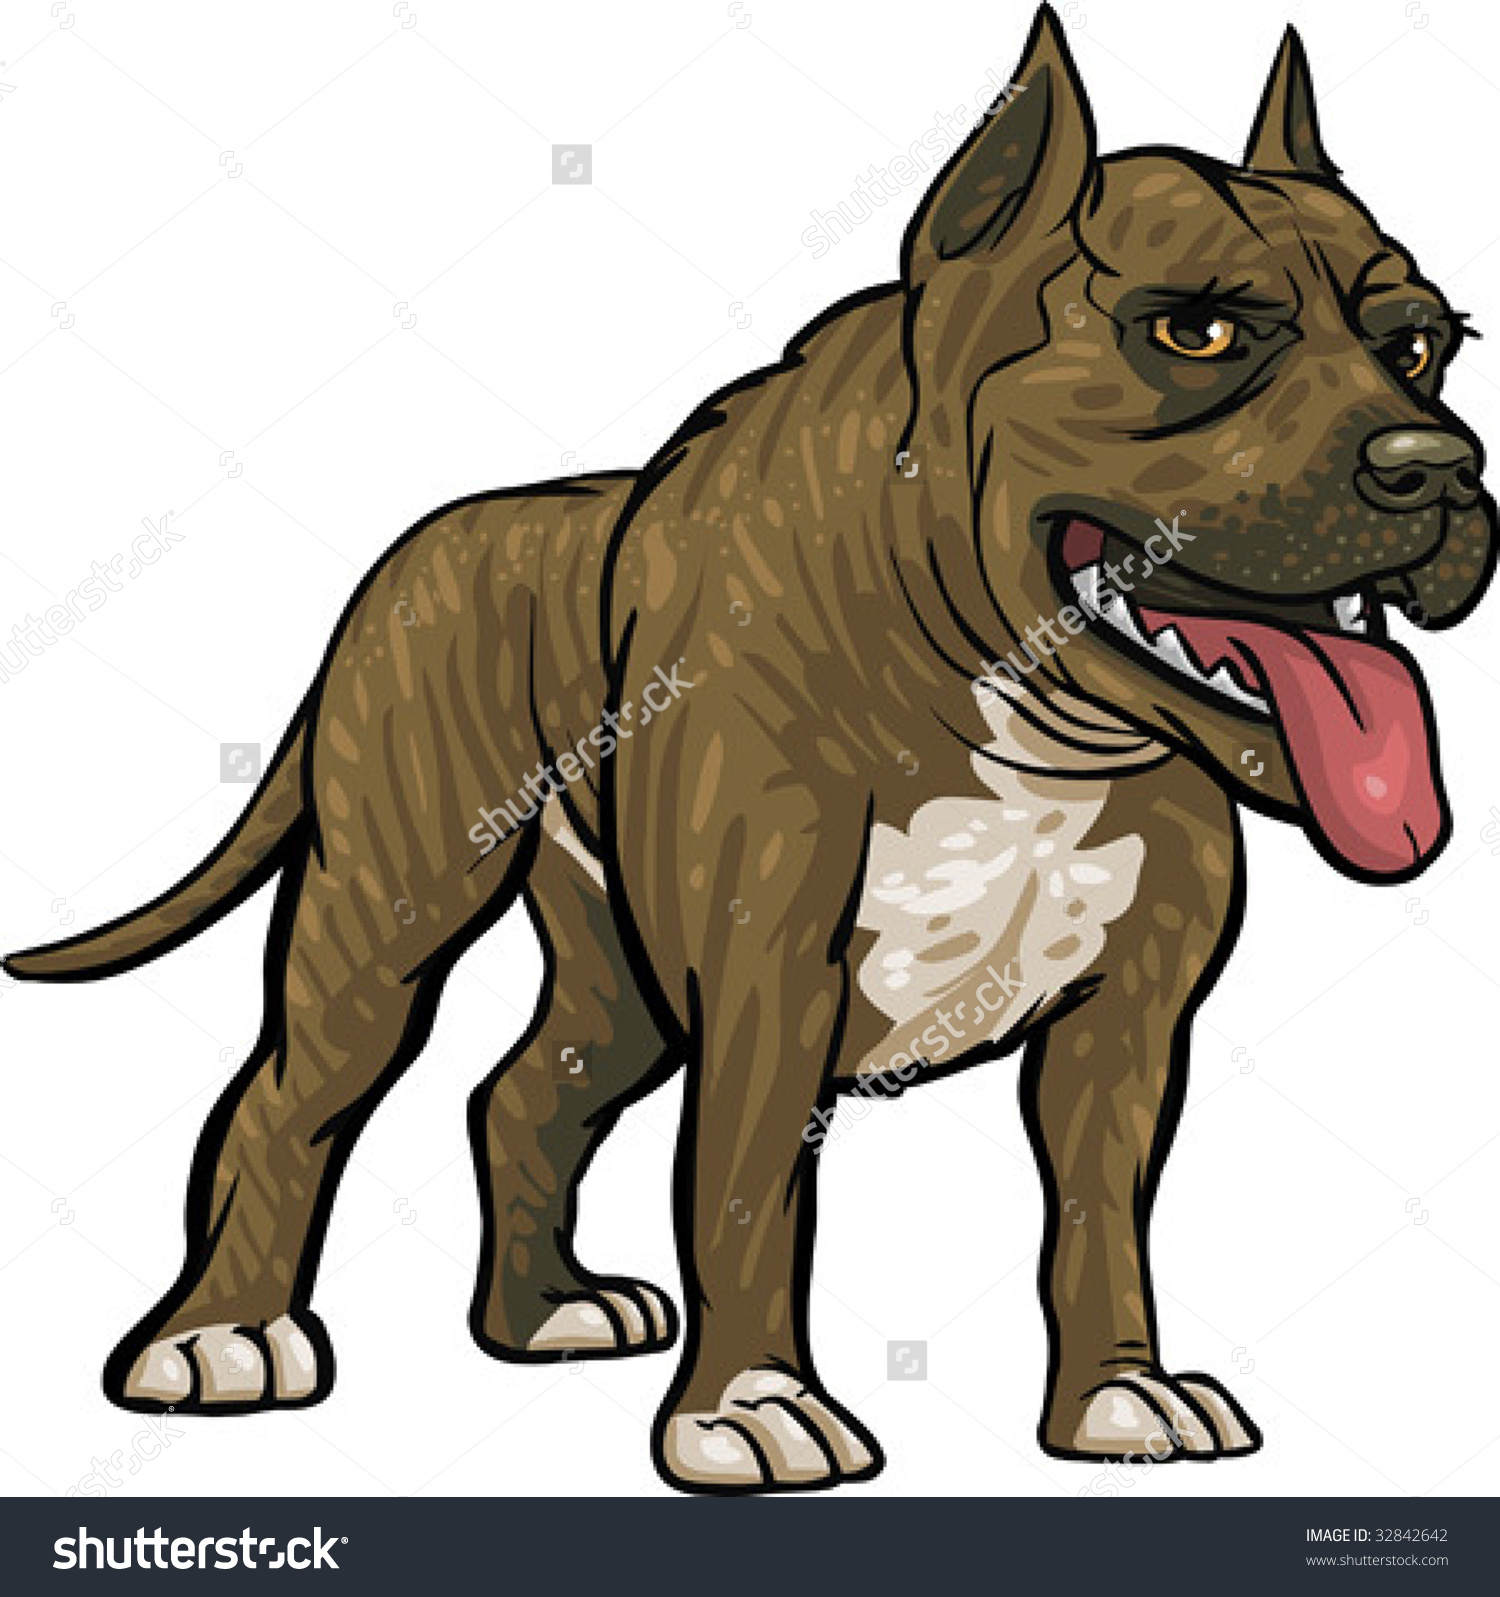 American Pit Bull Terrier clipart #2, Download drawings